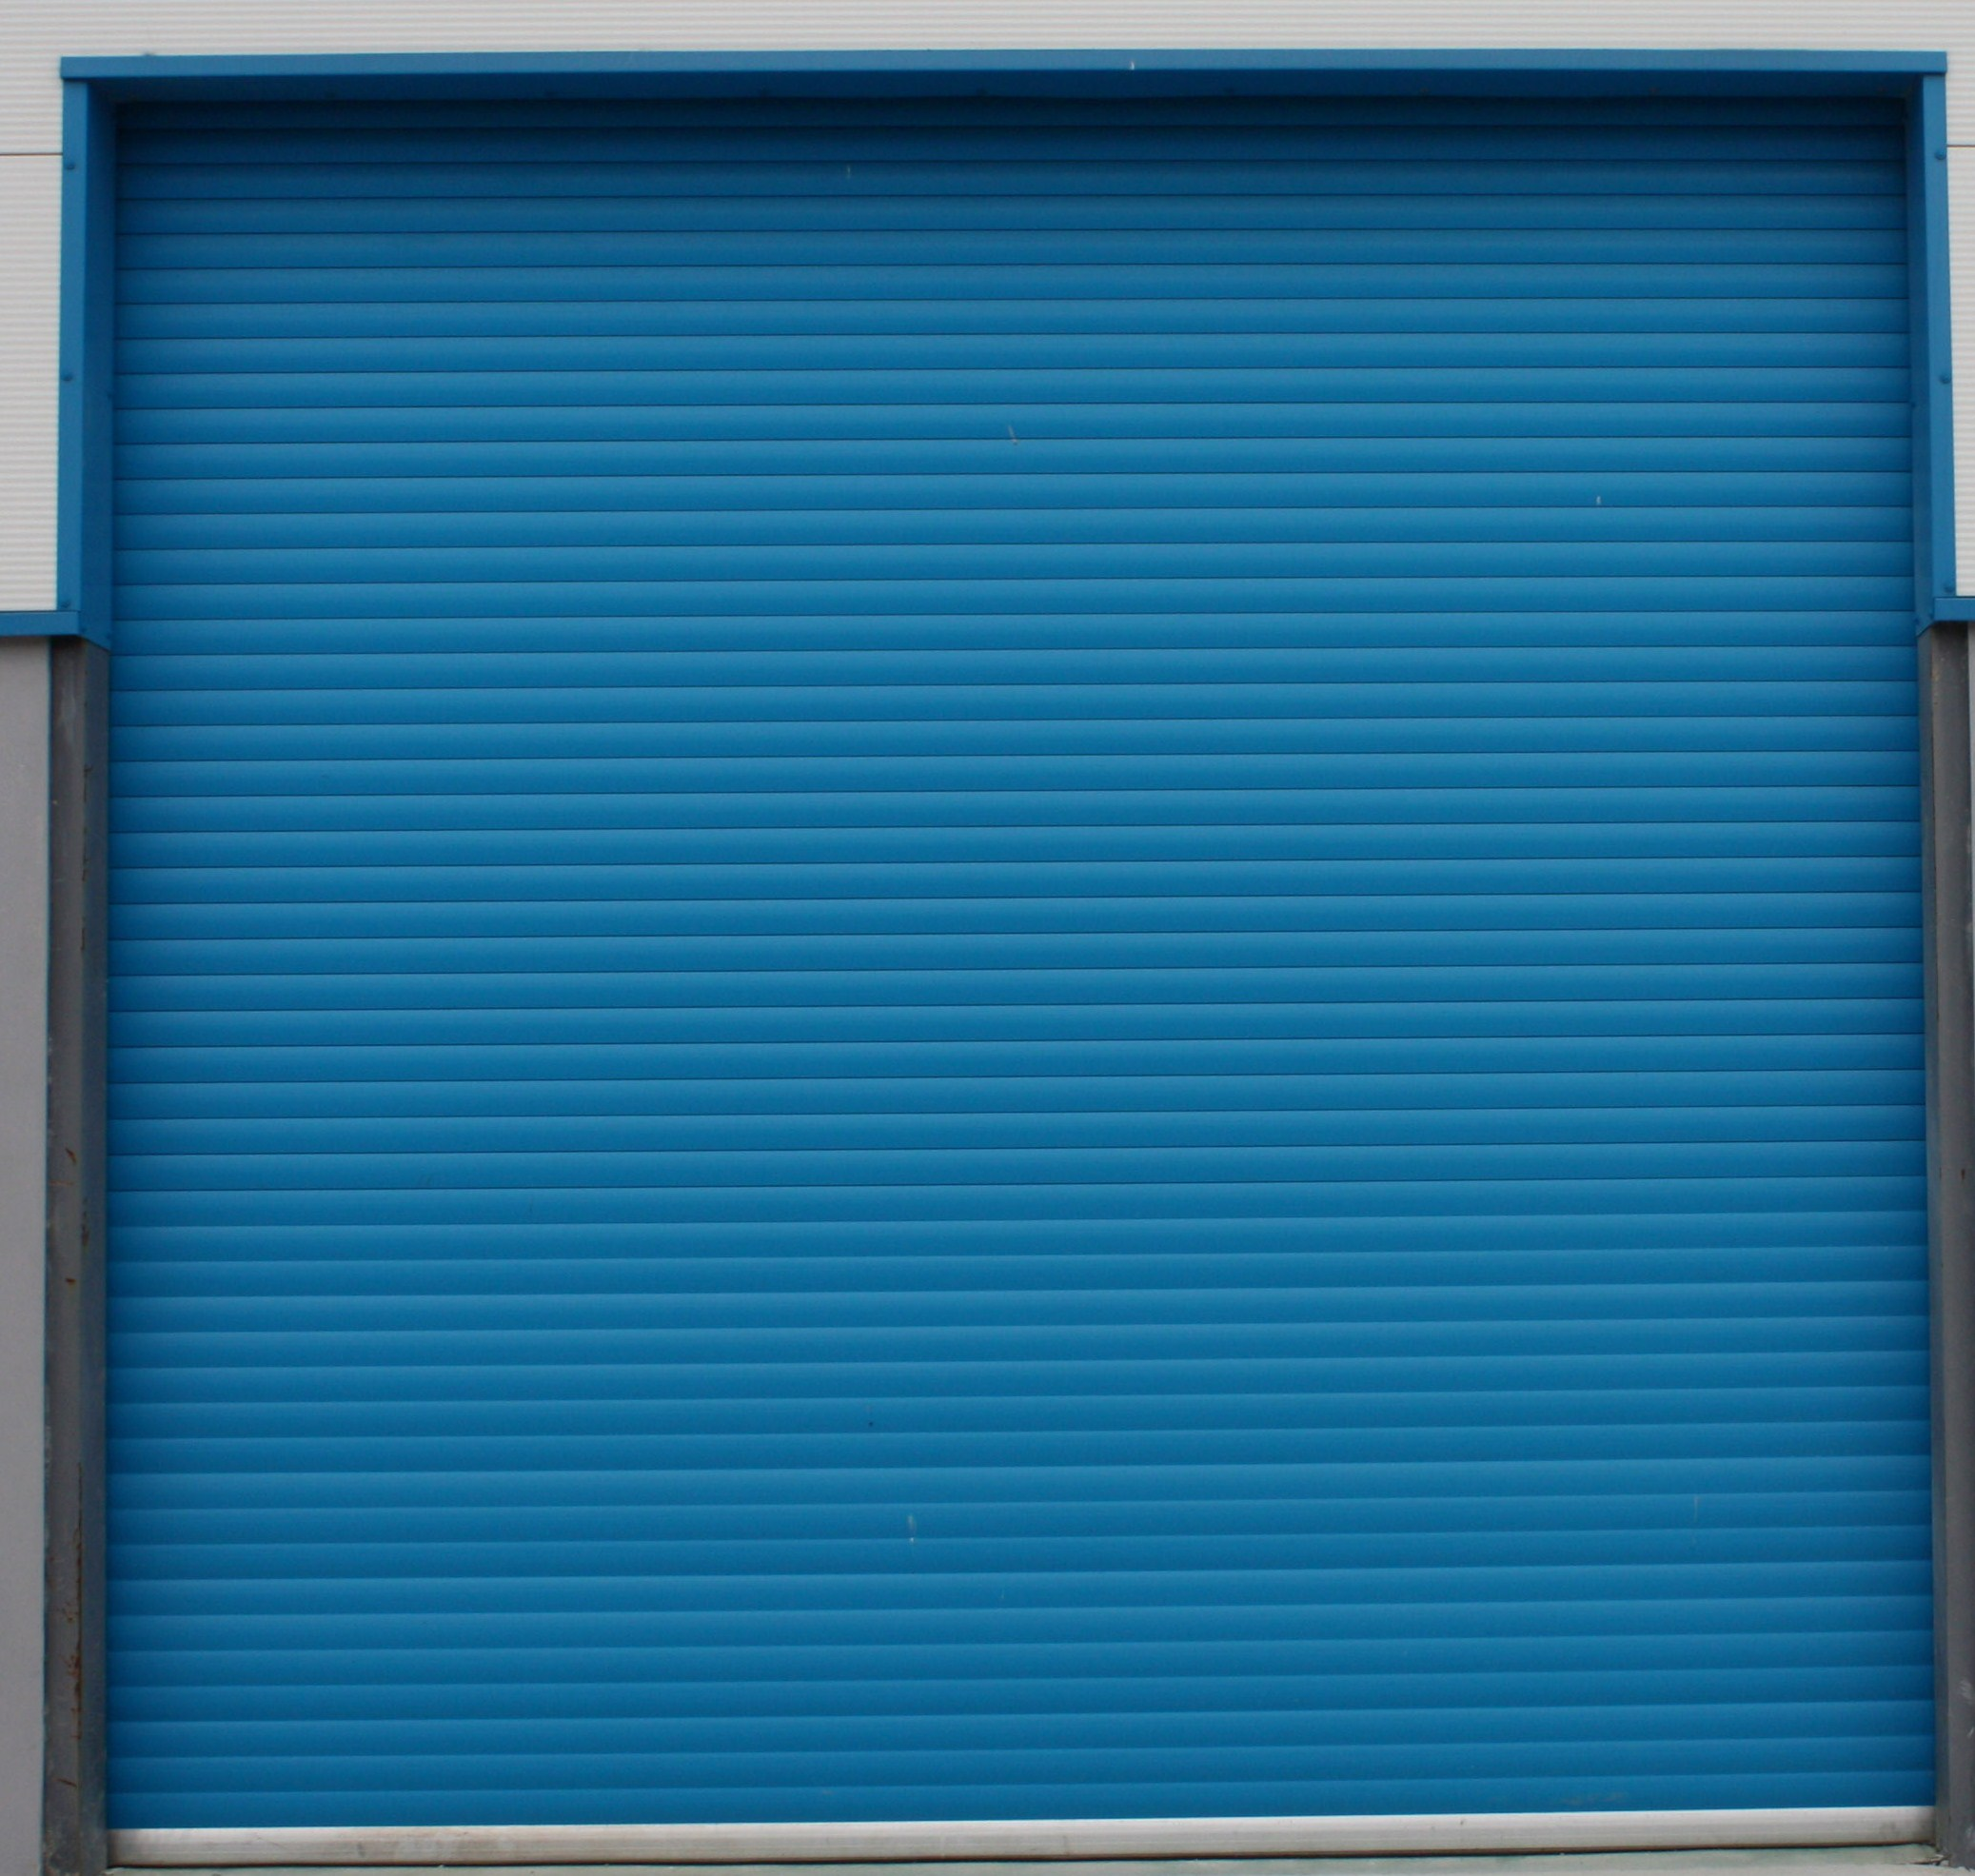 Aes Roller Shutters Manufacture Installation Service And